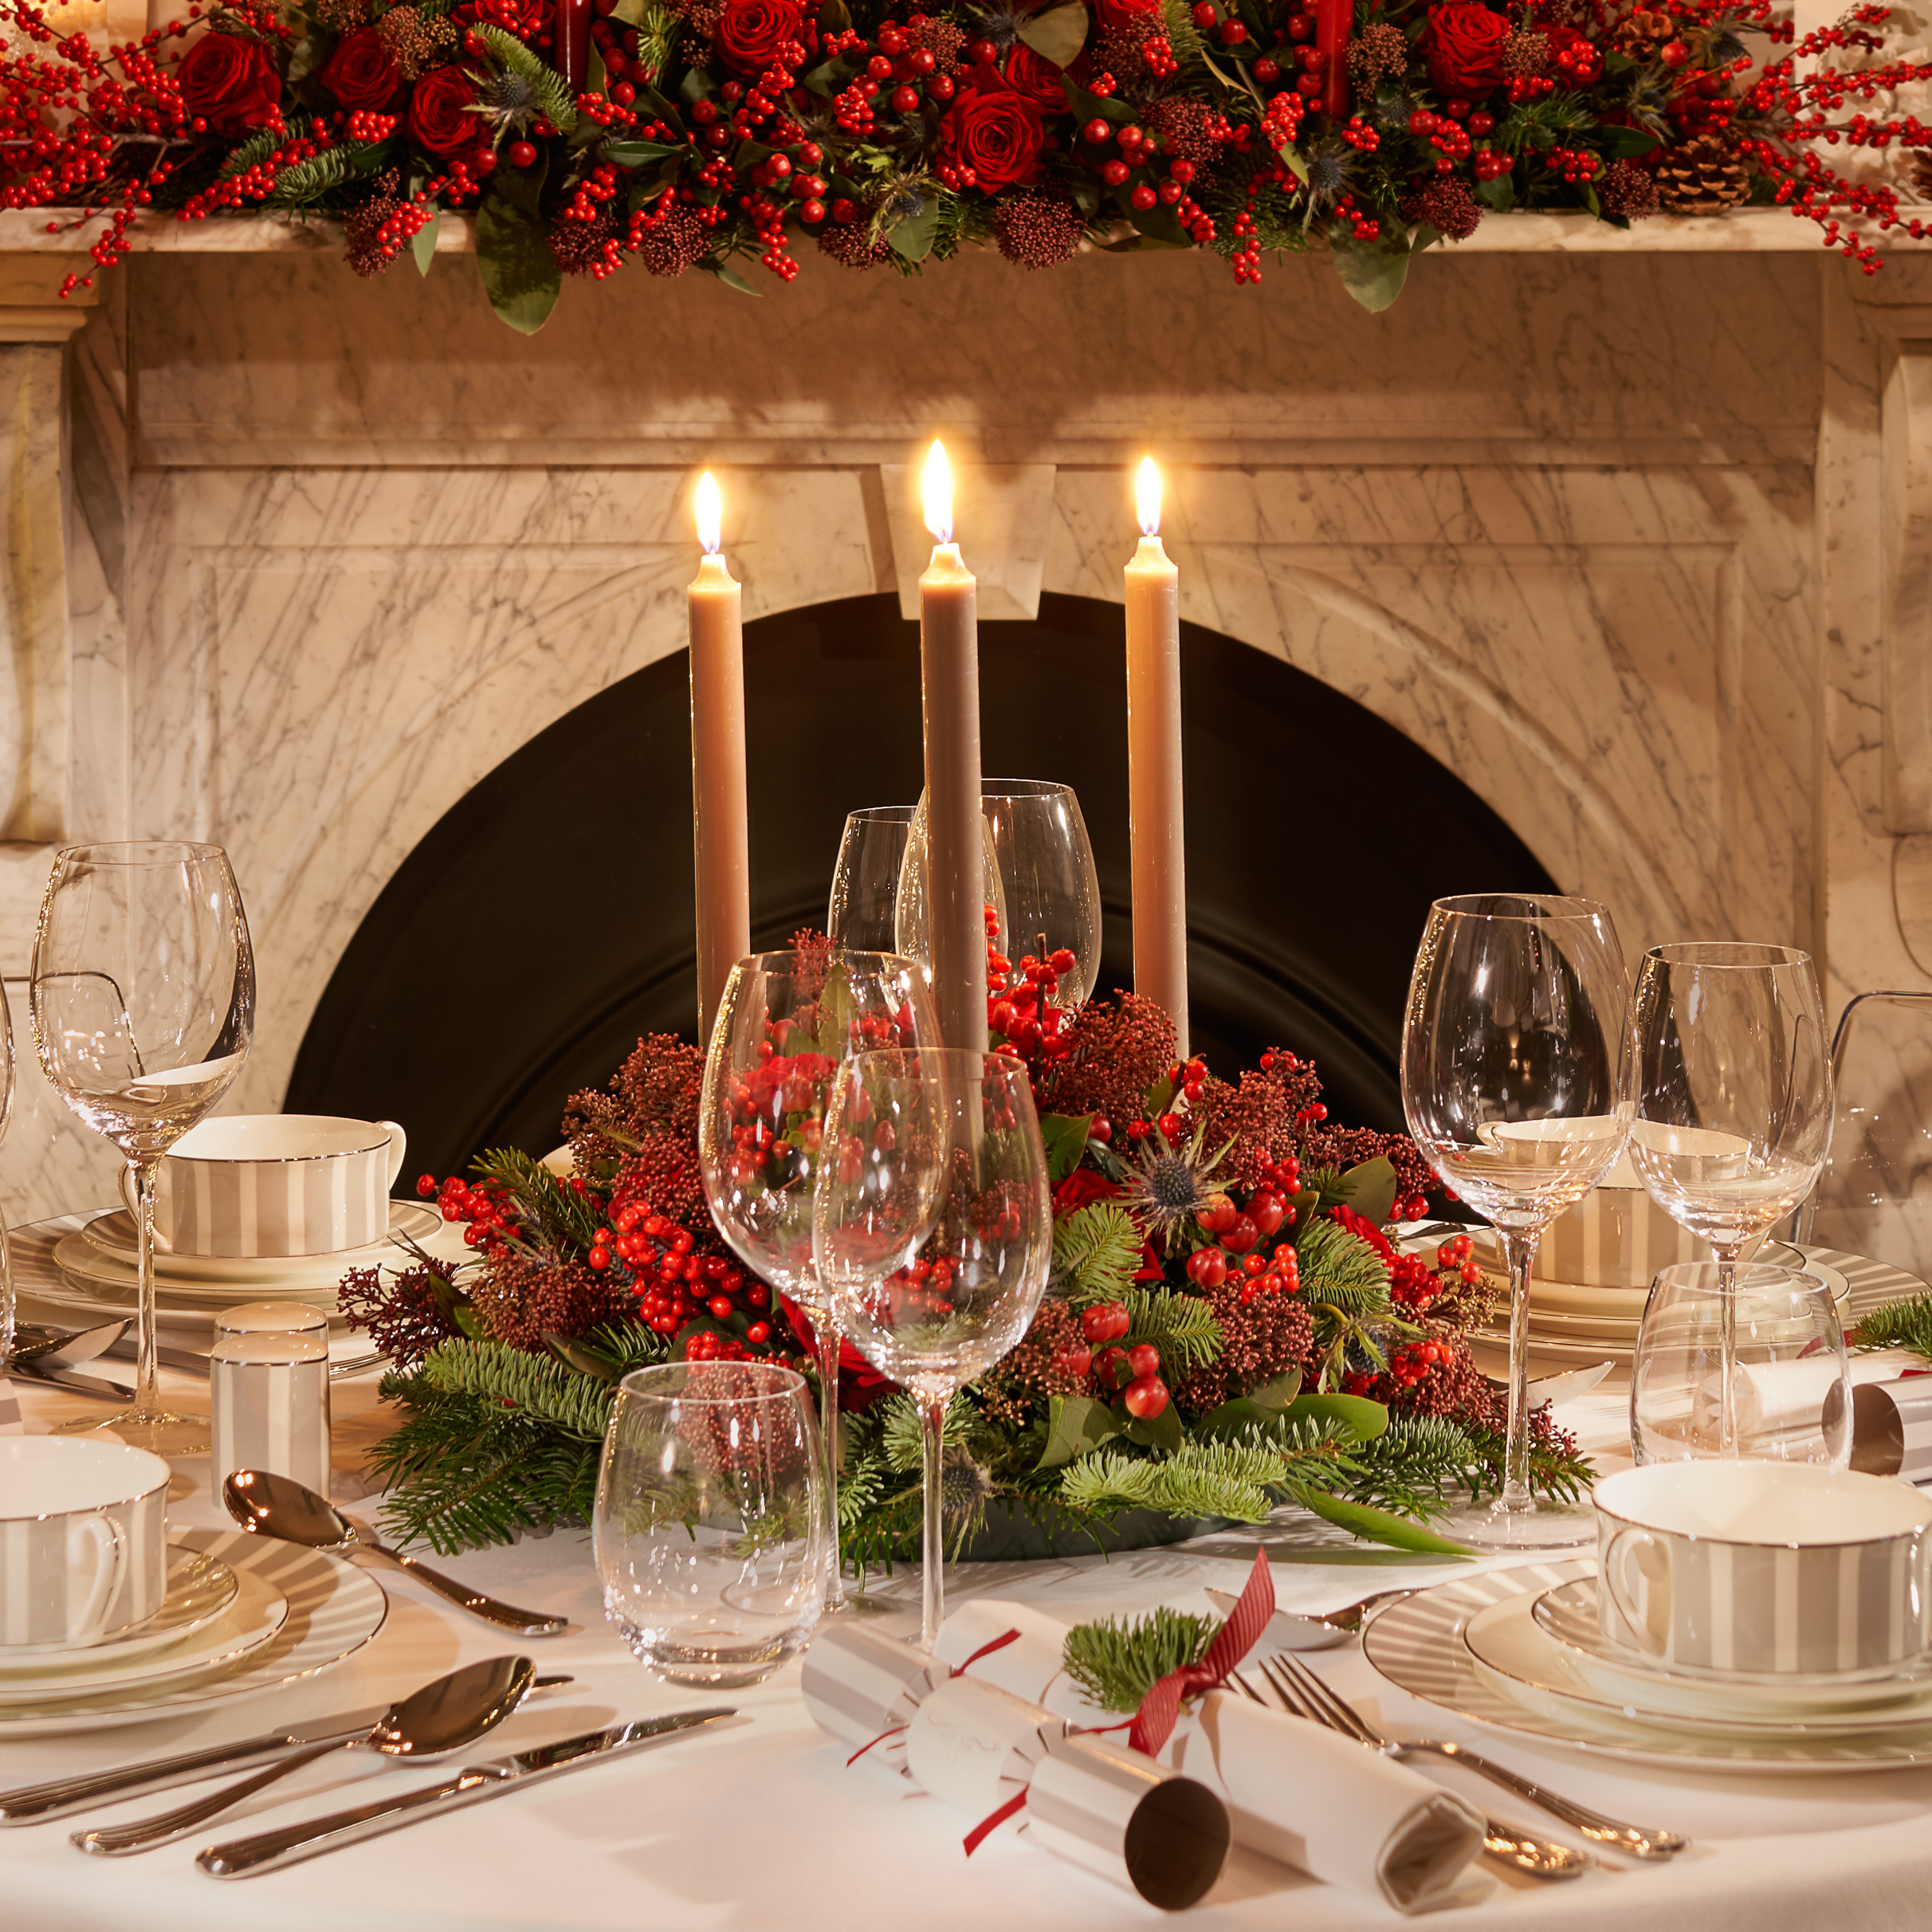 Dining Table Setting Grey Candles Close Up 2400px.jpg